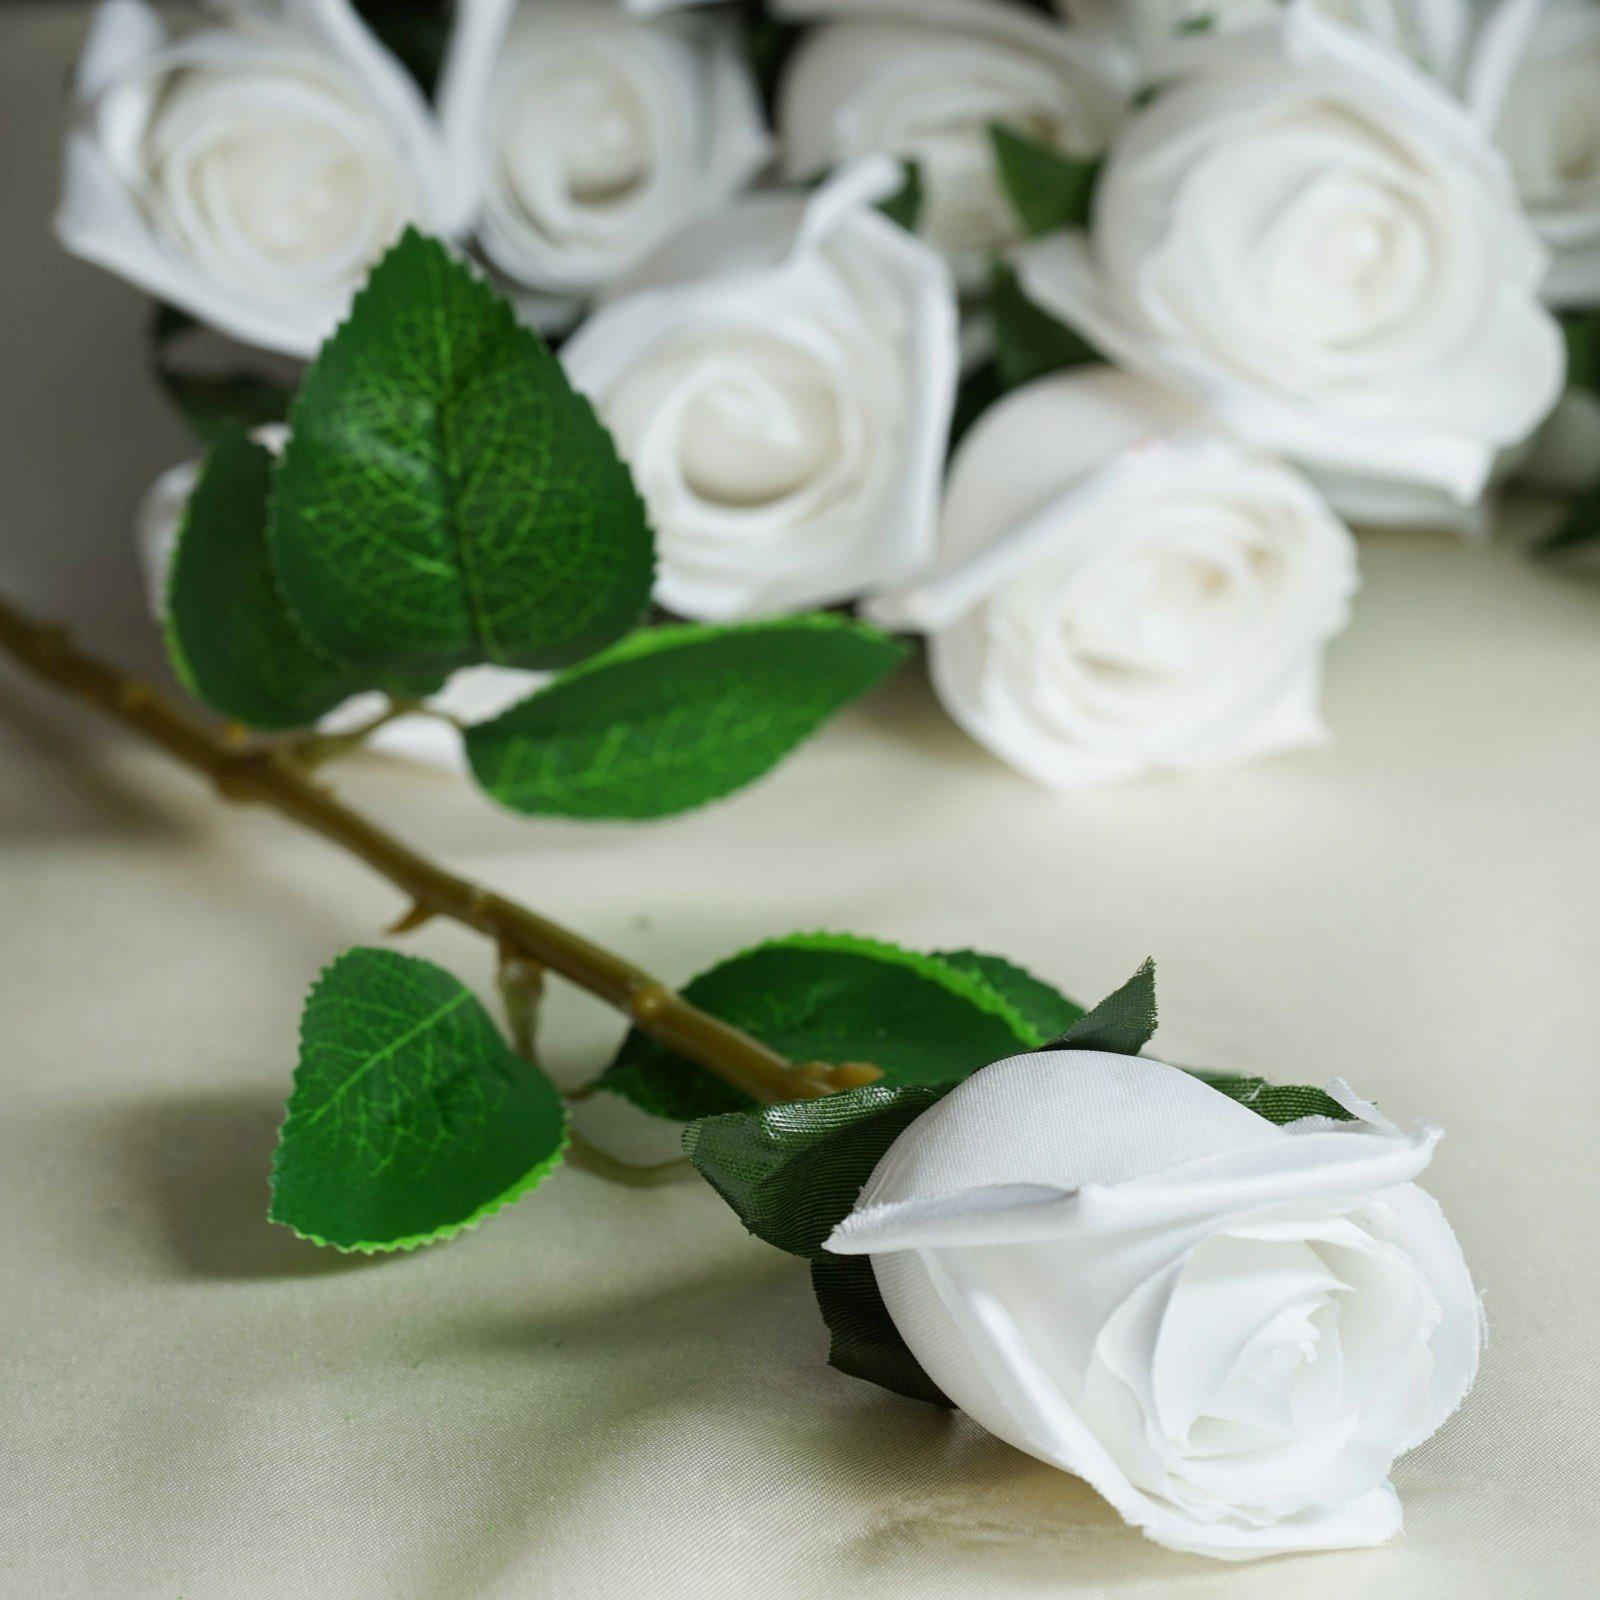 24 Pcs White Artificial Long Stem Silk Rose Flowers With Green